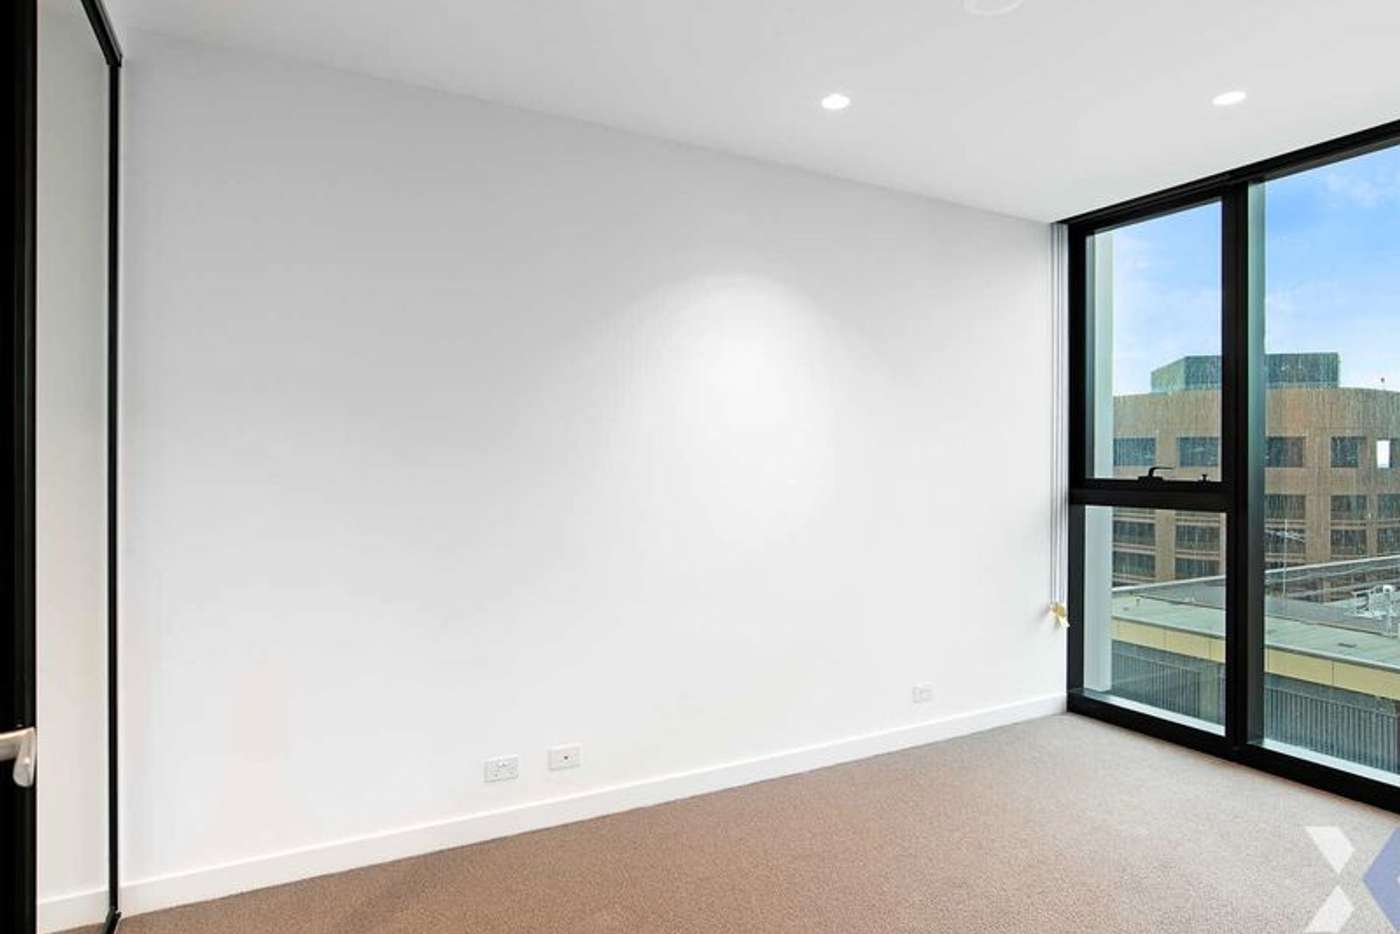 Sixth view of Homely apartment listing, 2203/462-473 Elizabeth Street, Melbourne VIC 3000